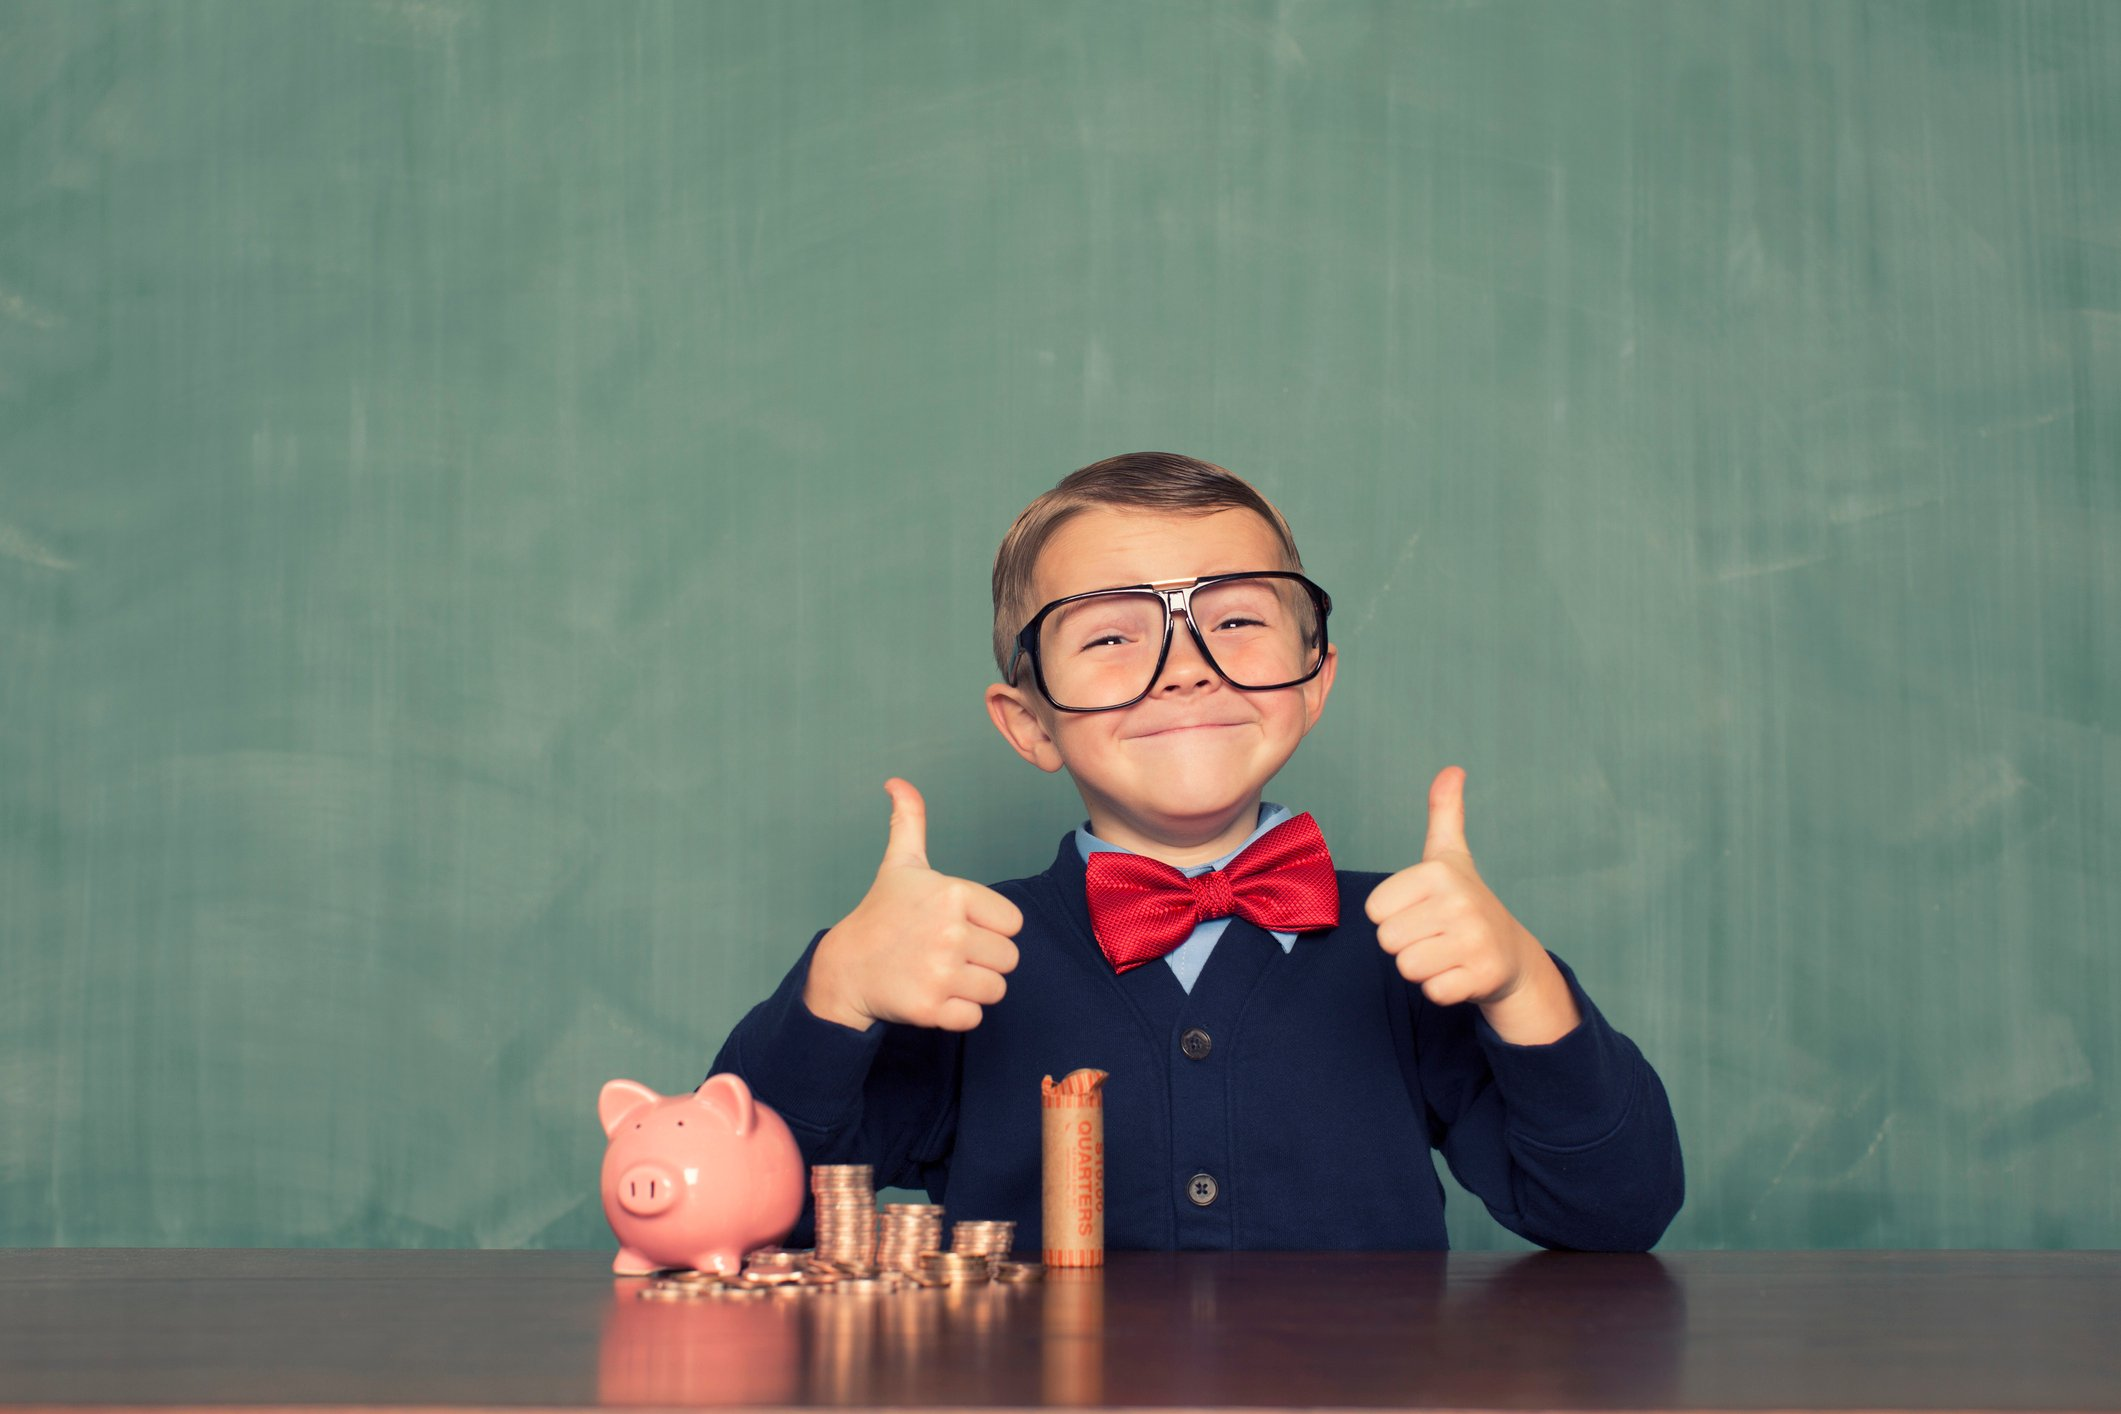 young boy giving thumbs up with piggy bank and piles of coins